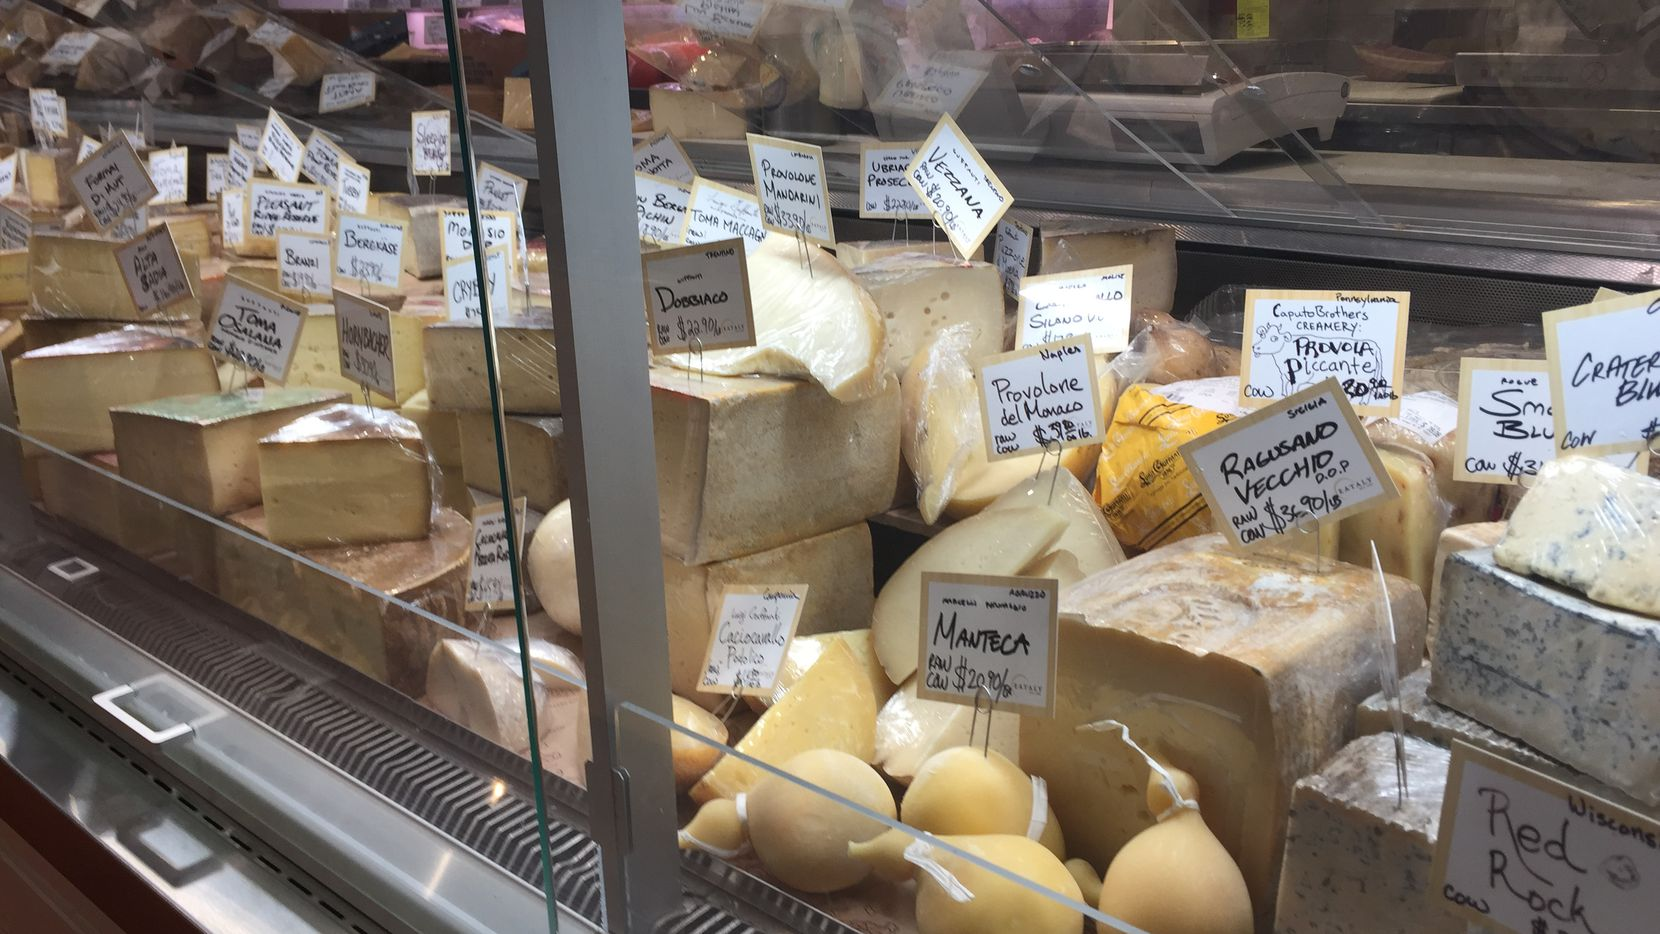 One of the cheese counters at Eataly in Downtown New York City.